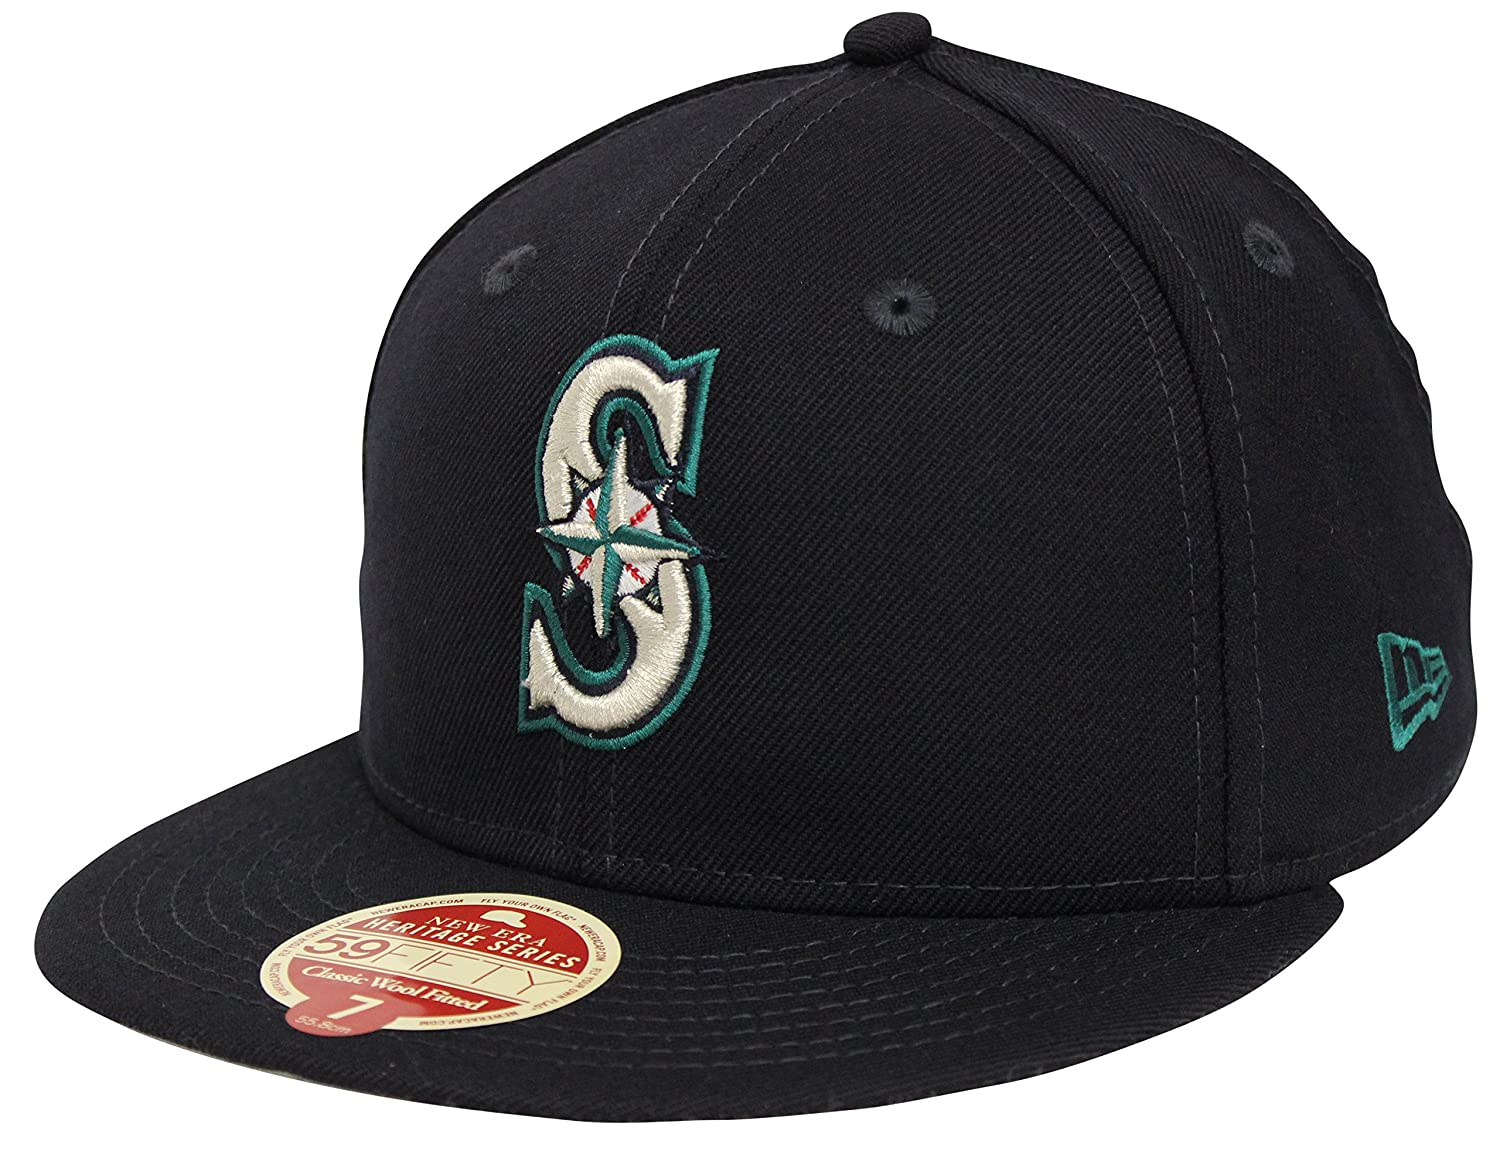 online retailer b16b1 4e2db New Era 59Fifty Wool Standard Seattle Mariners Navy Fitted Cap (7 3 4) at  Amazon Men s Clothing store